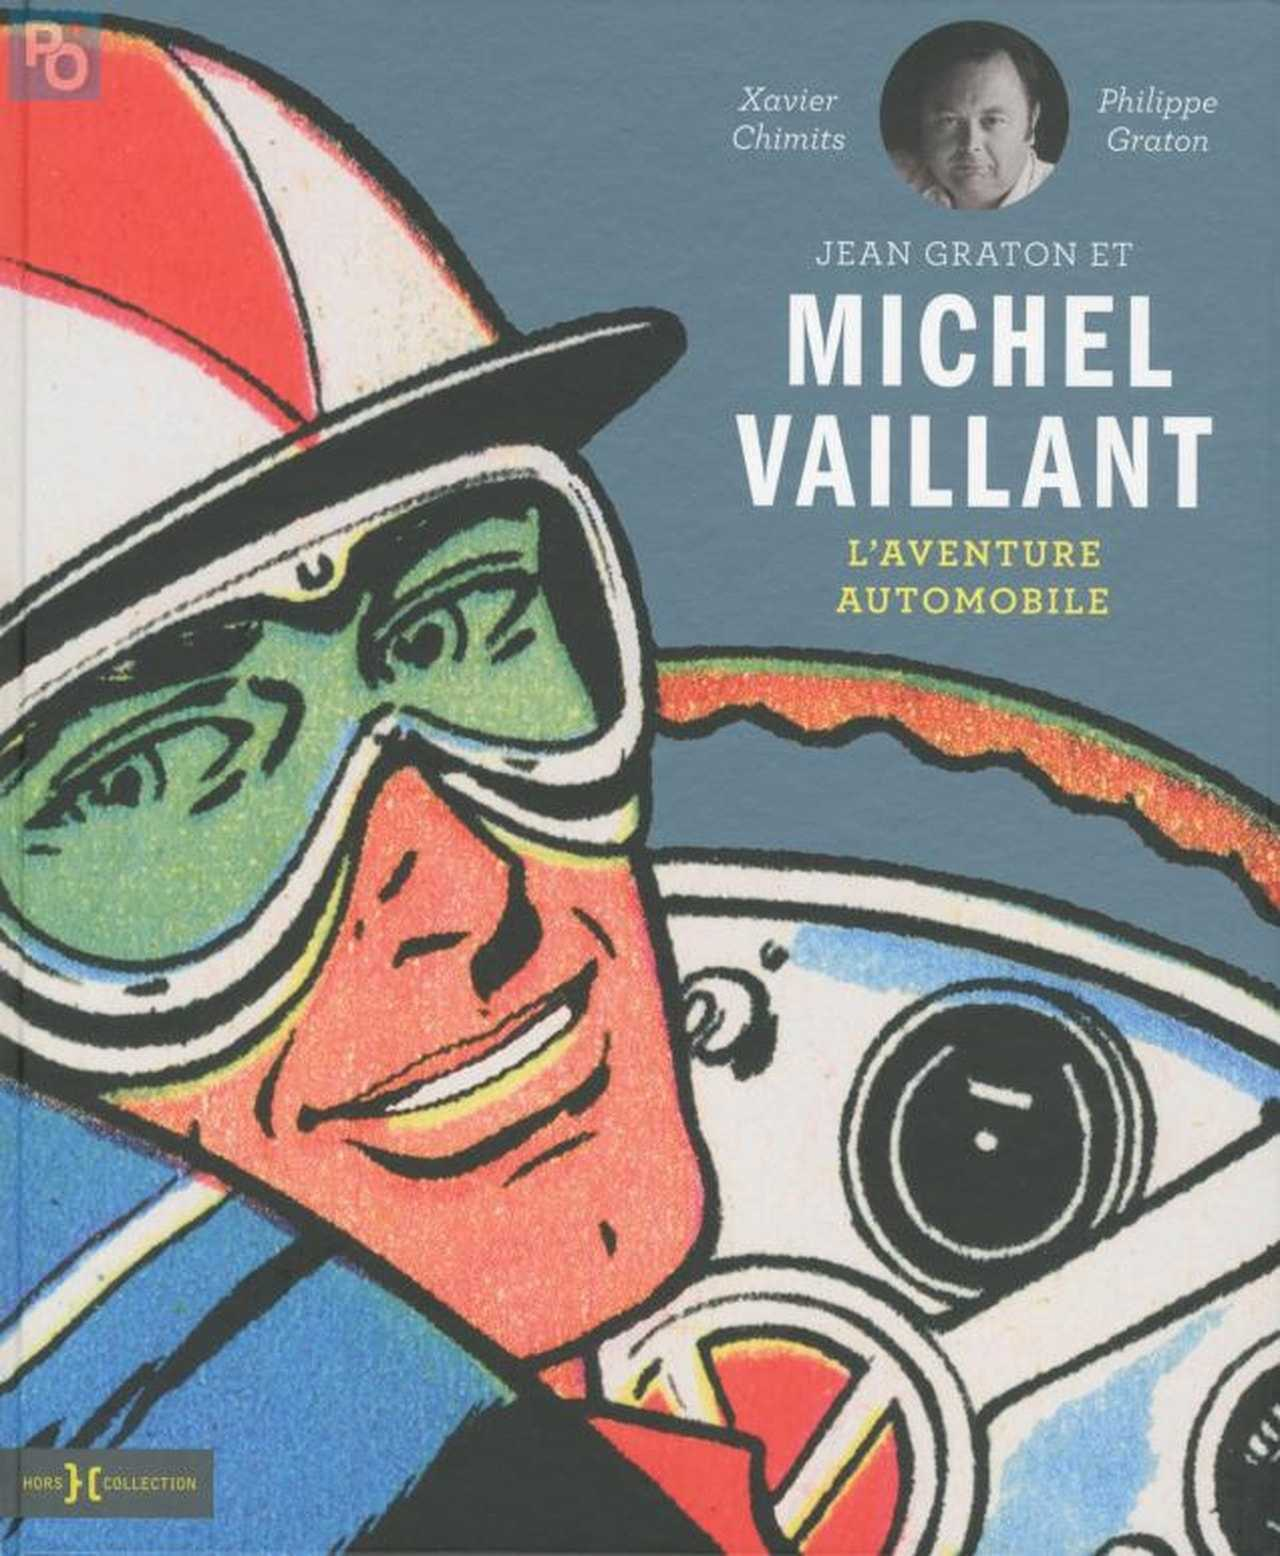 Jean Graton et Michel Vaillant, l'aventure automobile, chez Hors Collection et Collapsus, un nouvel album